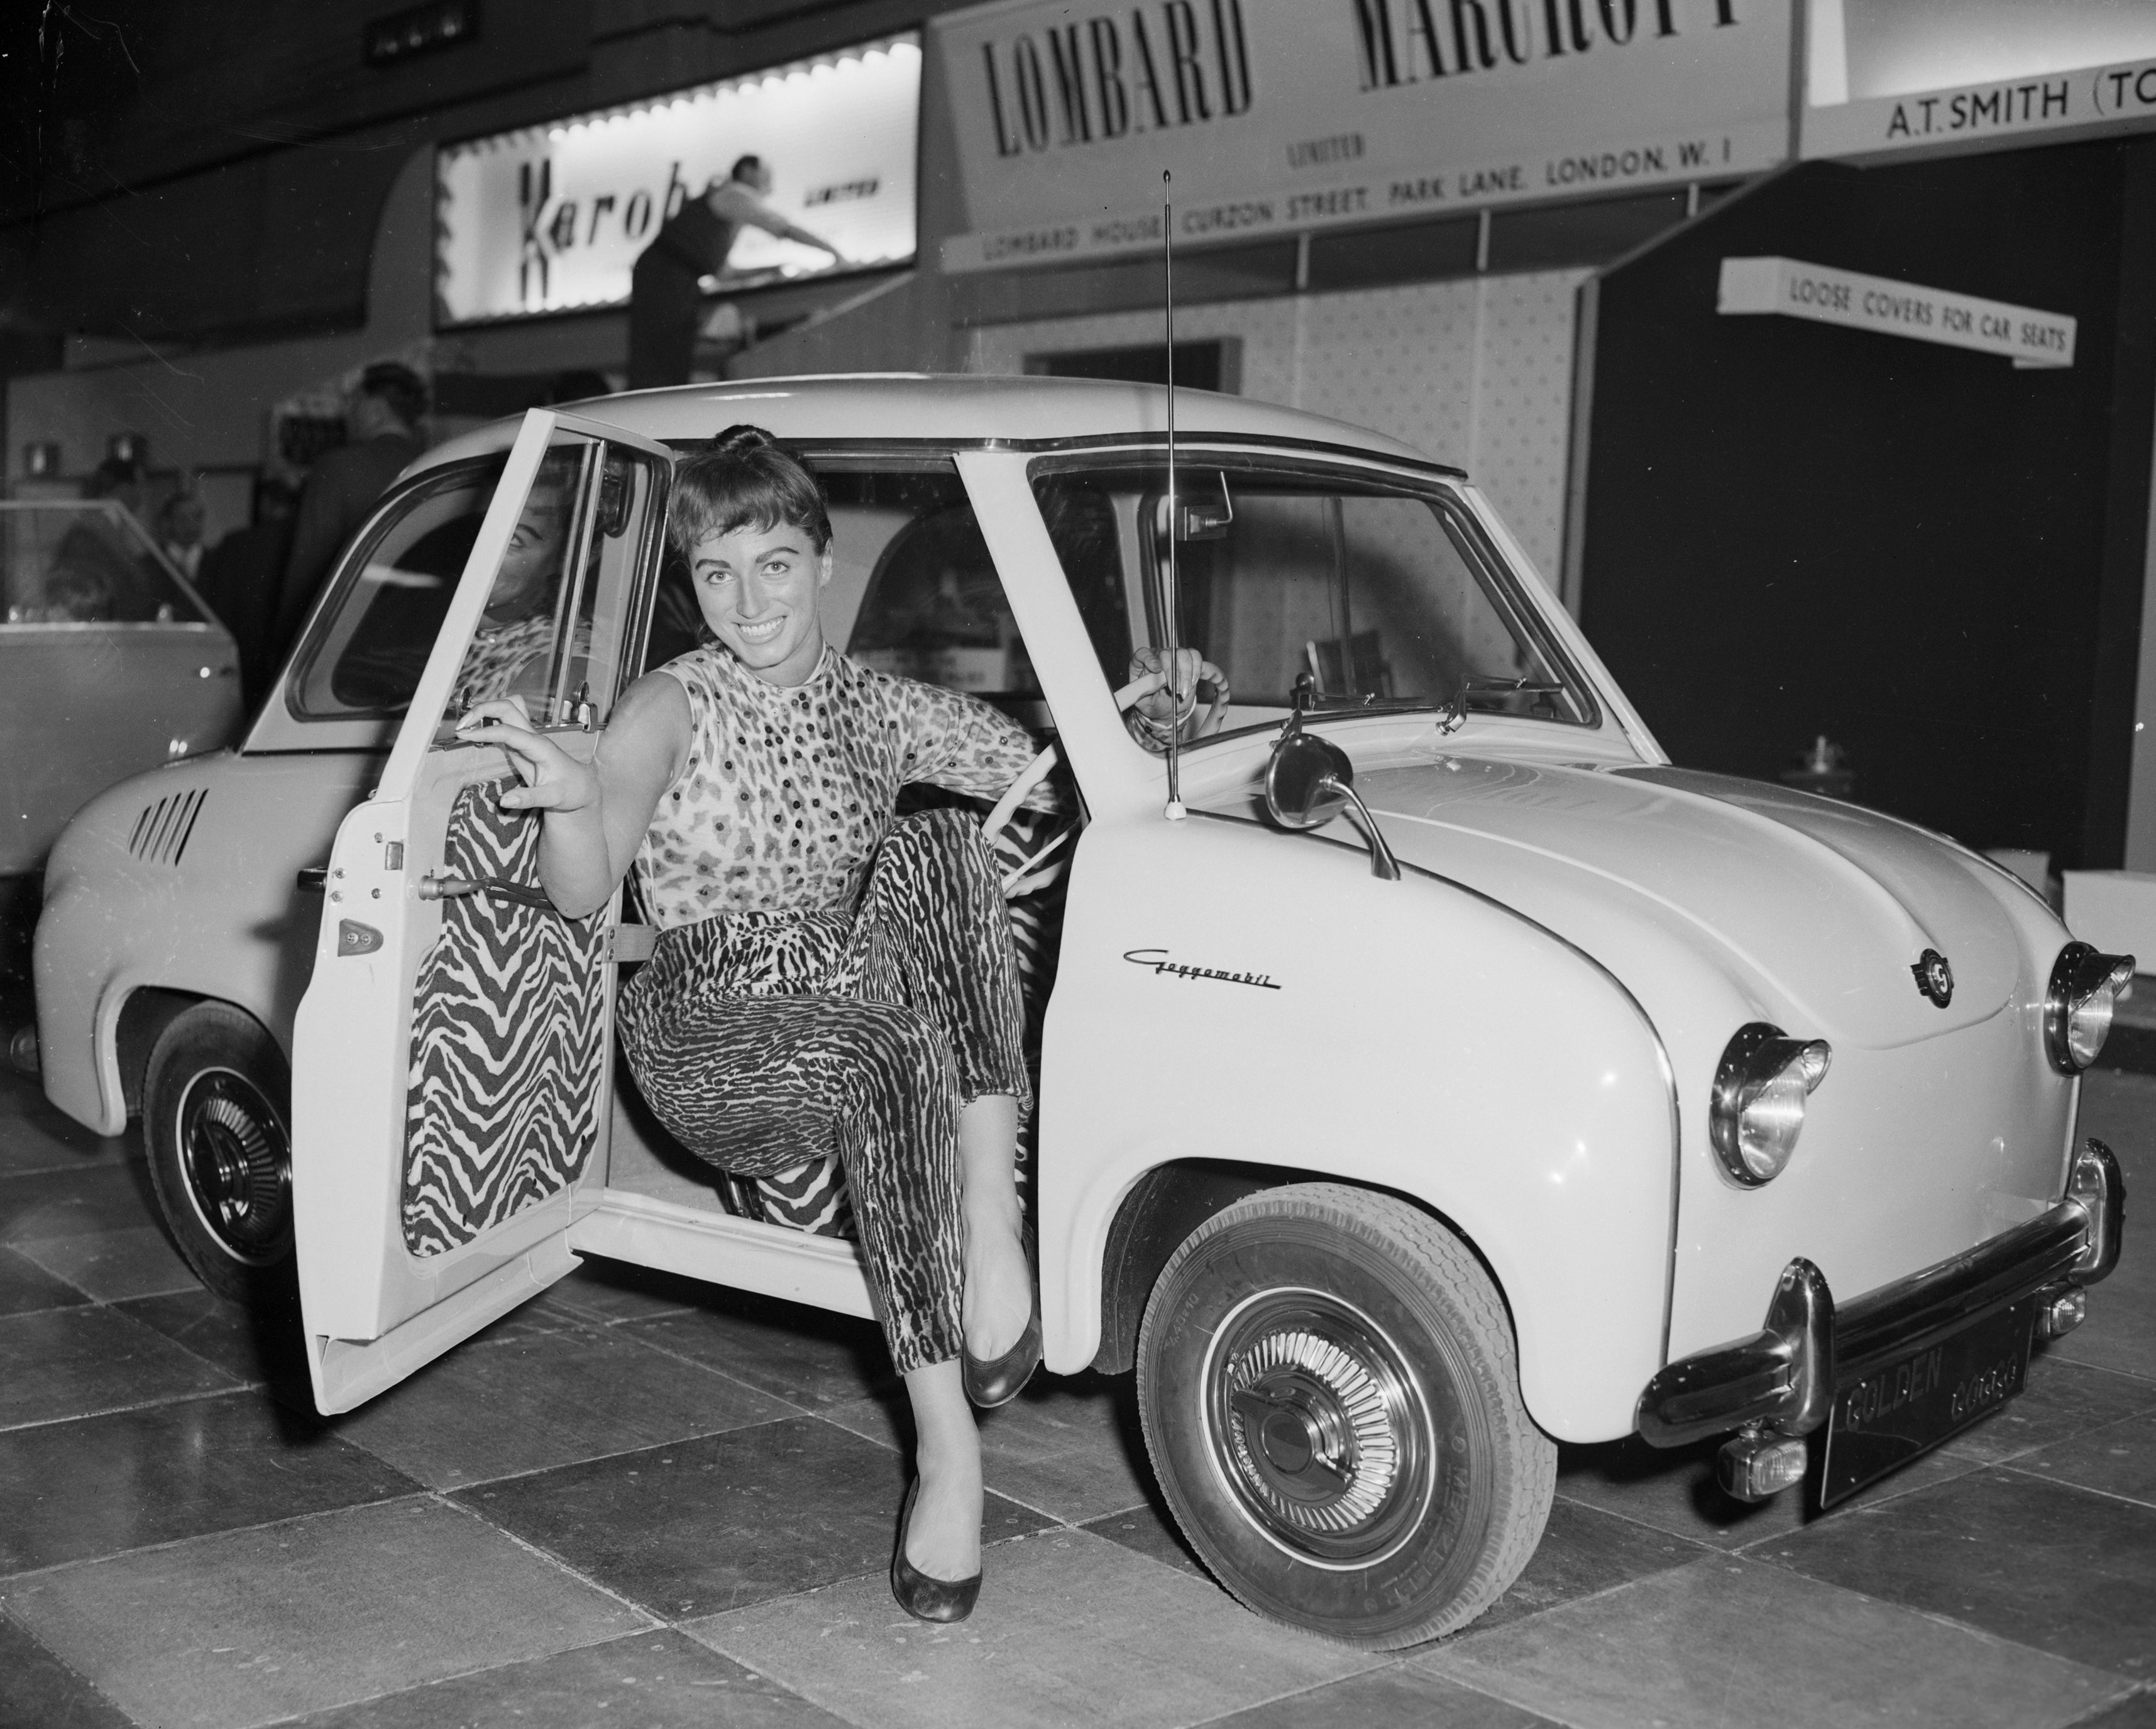 16th October 1956:  Model Jackie Collins at the Motor Show, Earl's Court, London, wearing a leopard print outfit designed by Car Robes, makers of car seat covers. She is sitting in a Goggomobil T300, the smallest family four-seater car on the market, which is made in Bavaria.  (Photo by Ron Burton/Keystone/Getty Images)